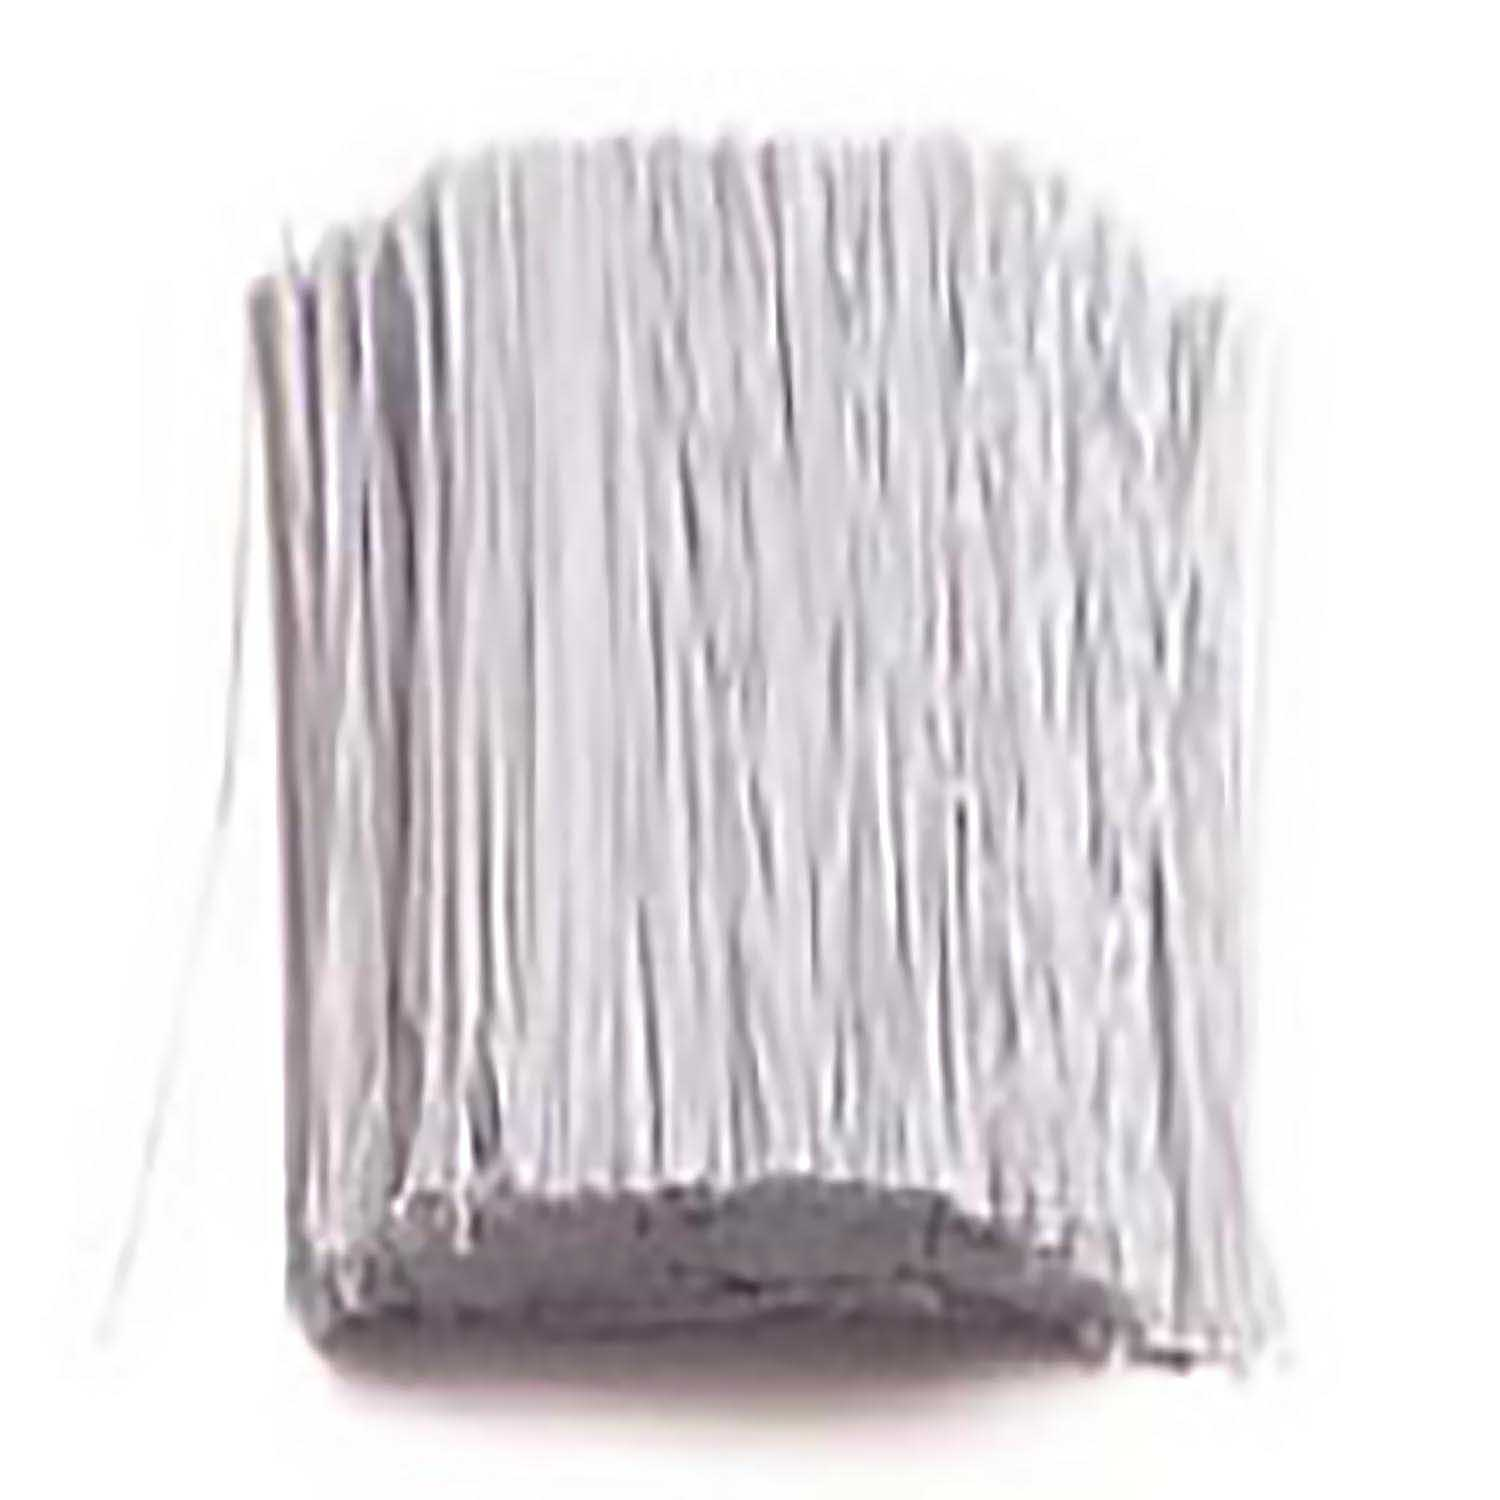 32 Gauge White 6in Covered Wire